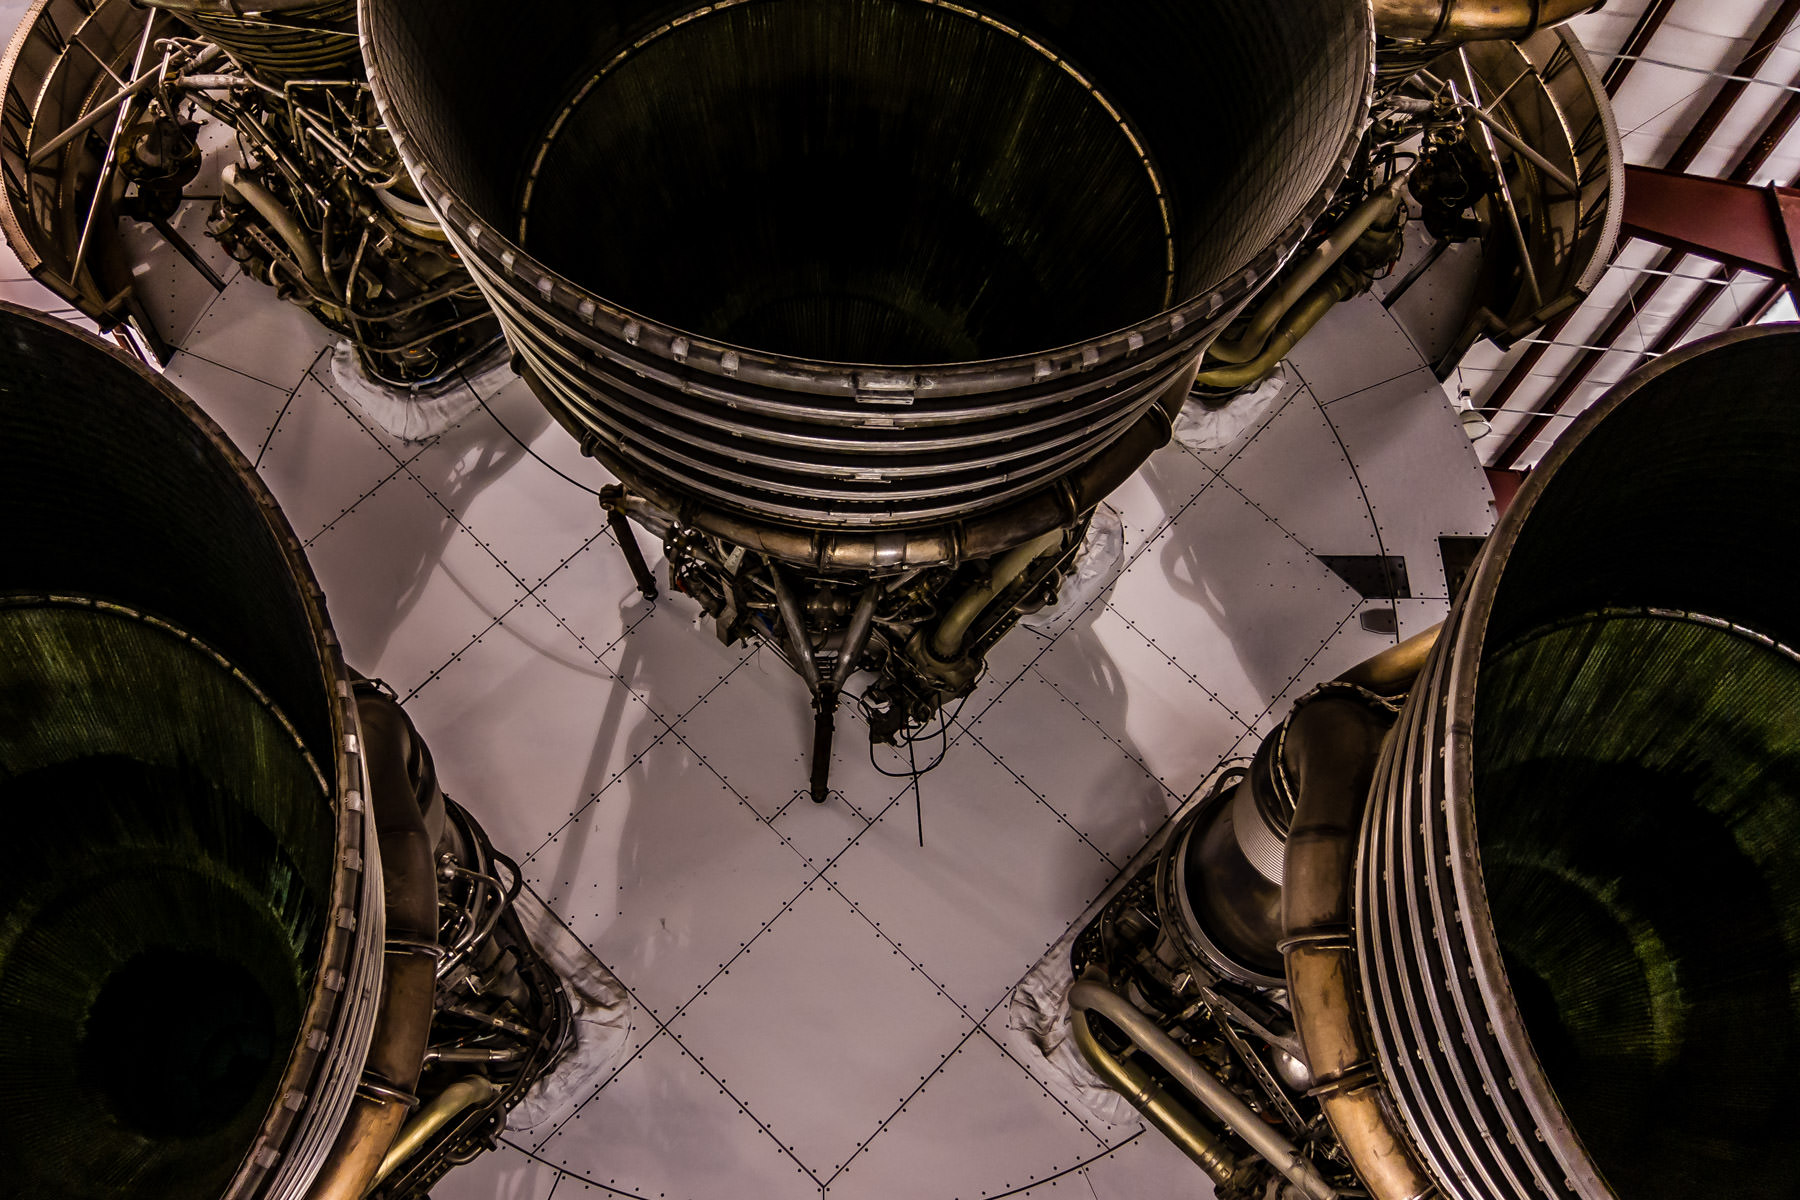 Detail of rocket engines on a Saturn V rocket at NASA's Johnson Space Center, Houston.